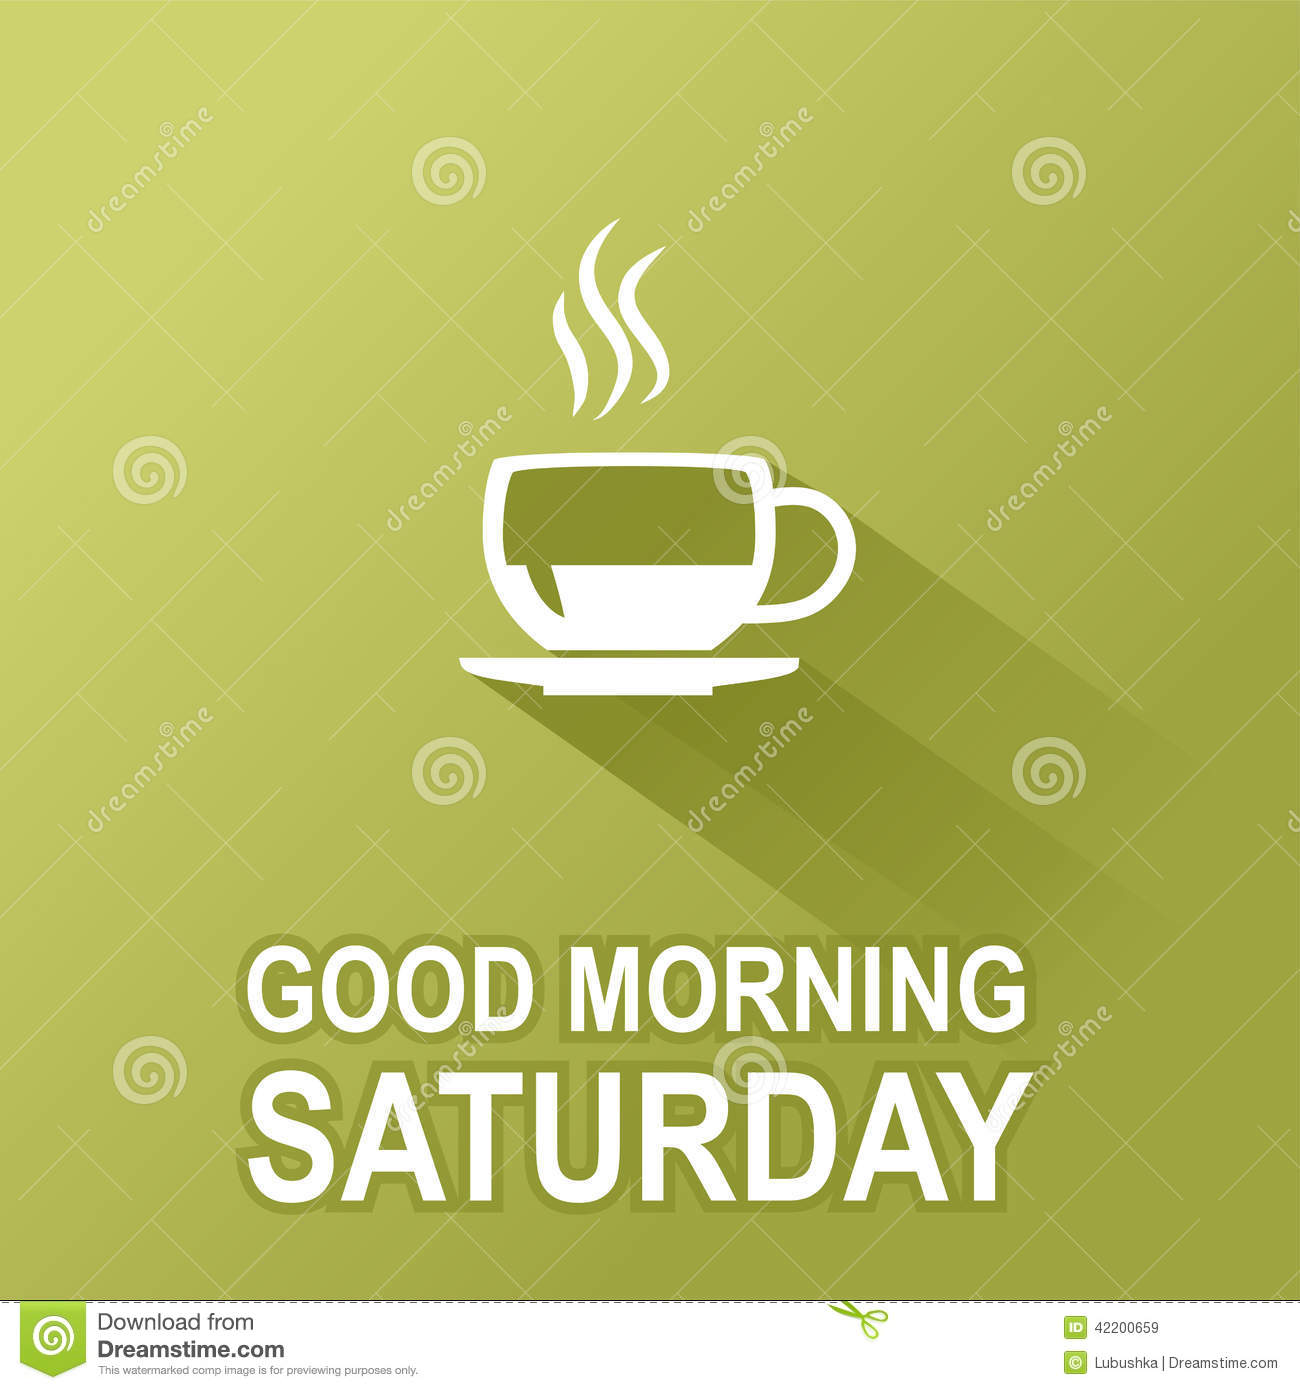 Good Morning Saturday Text : Days of the week saturday stock vector image